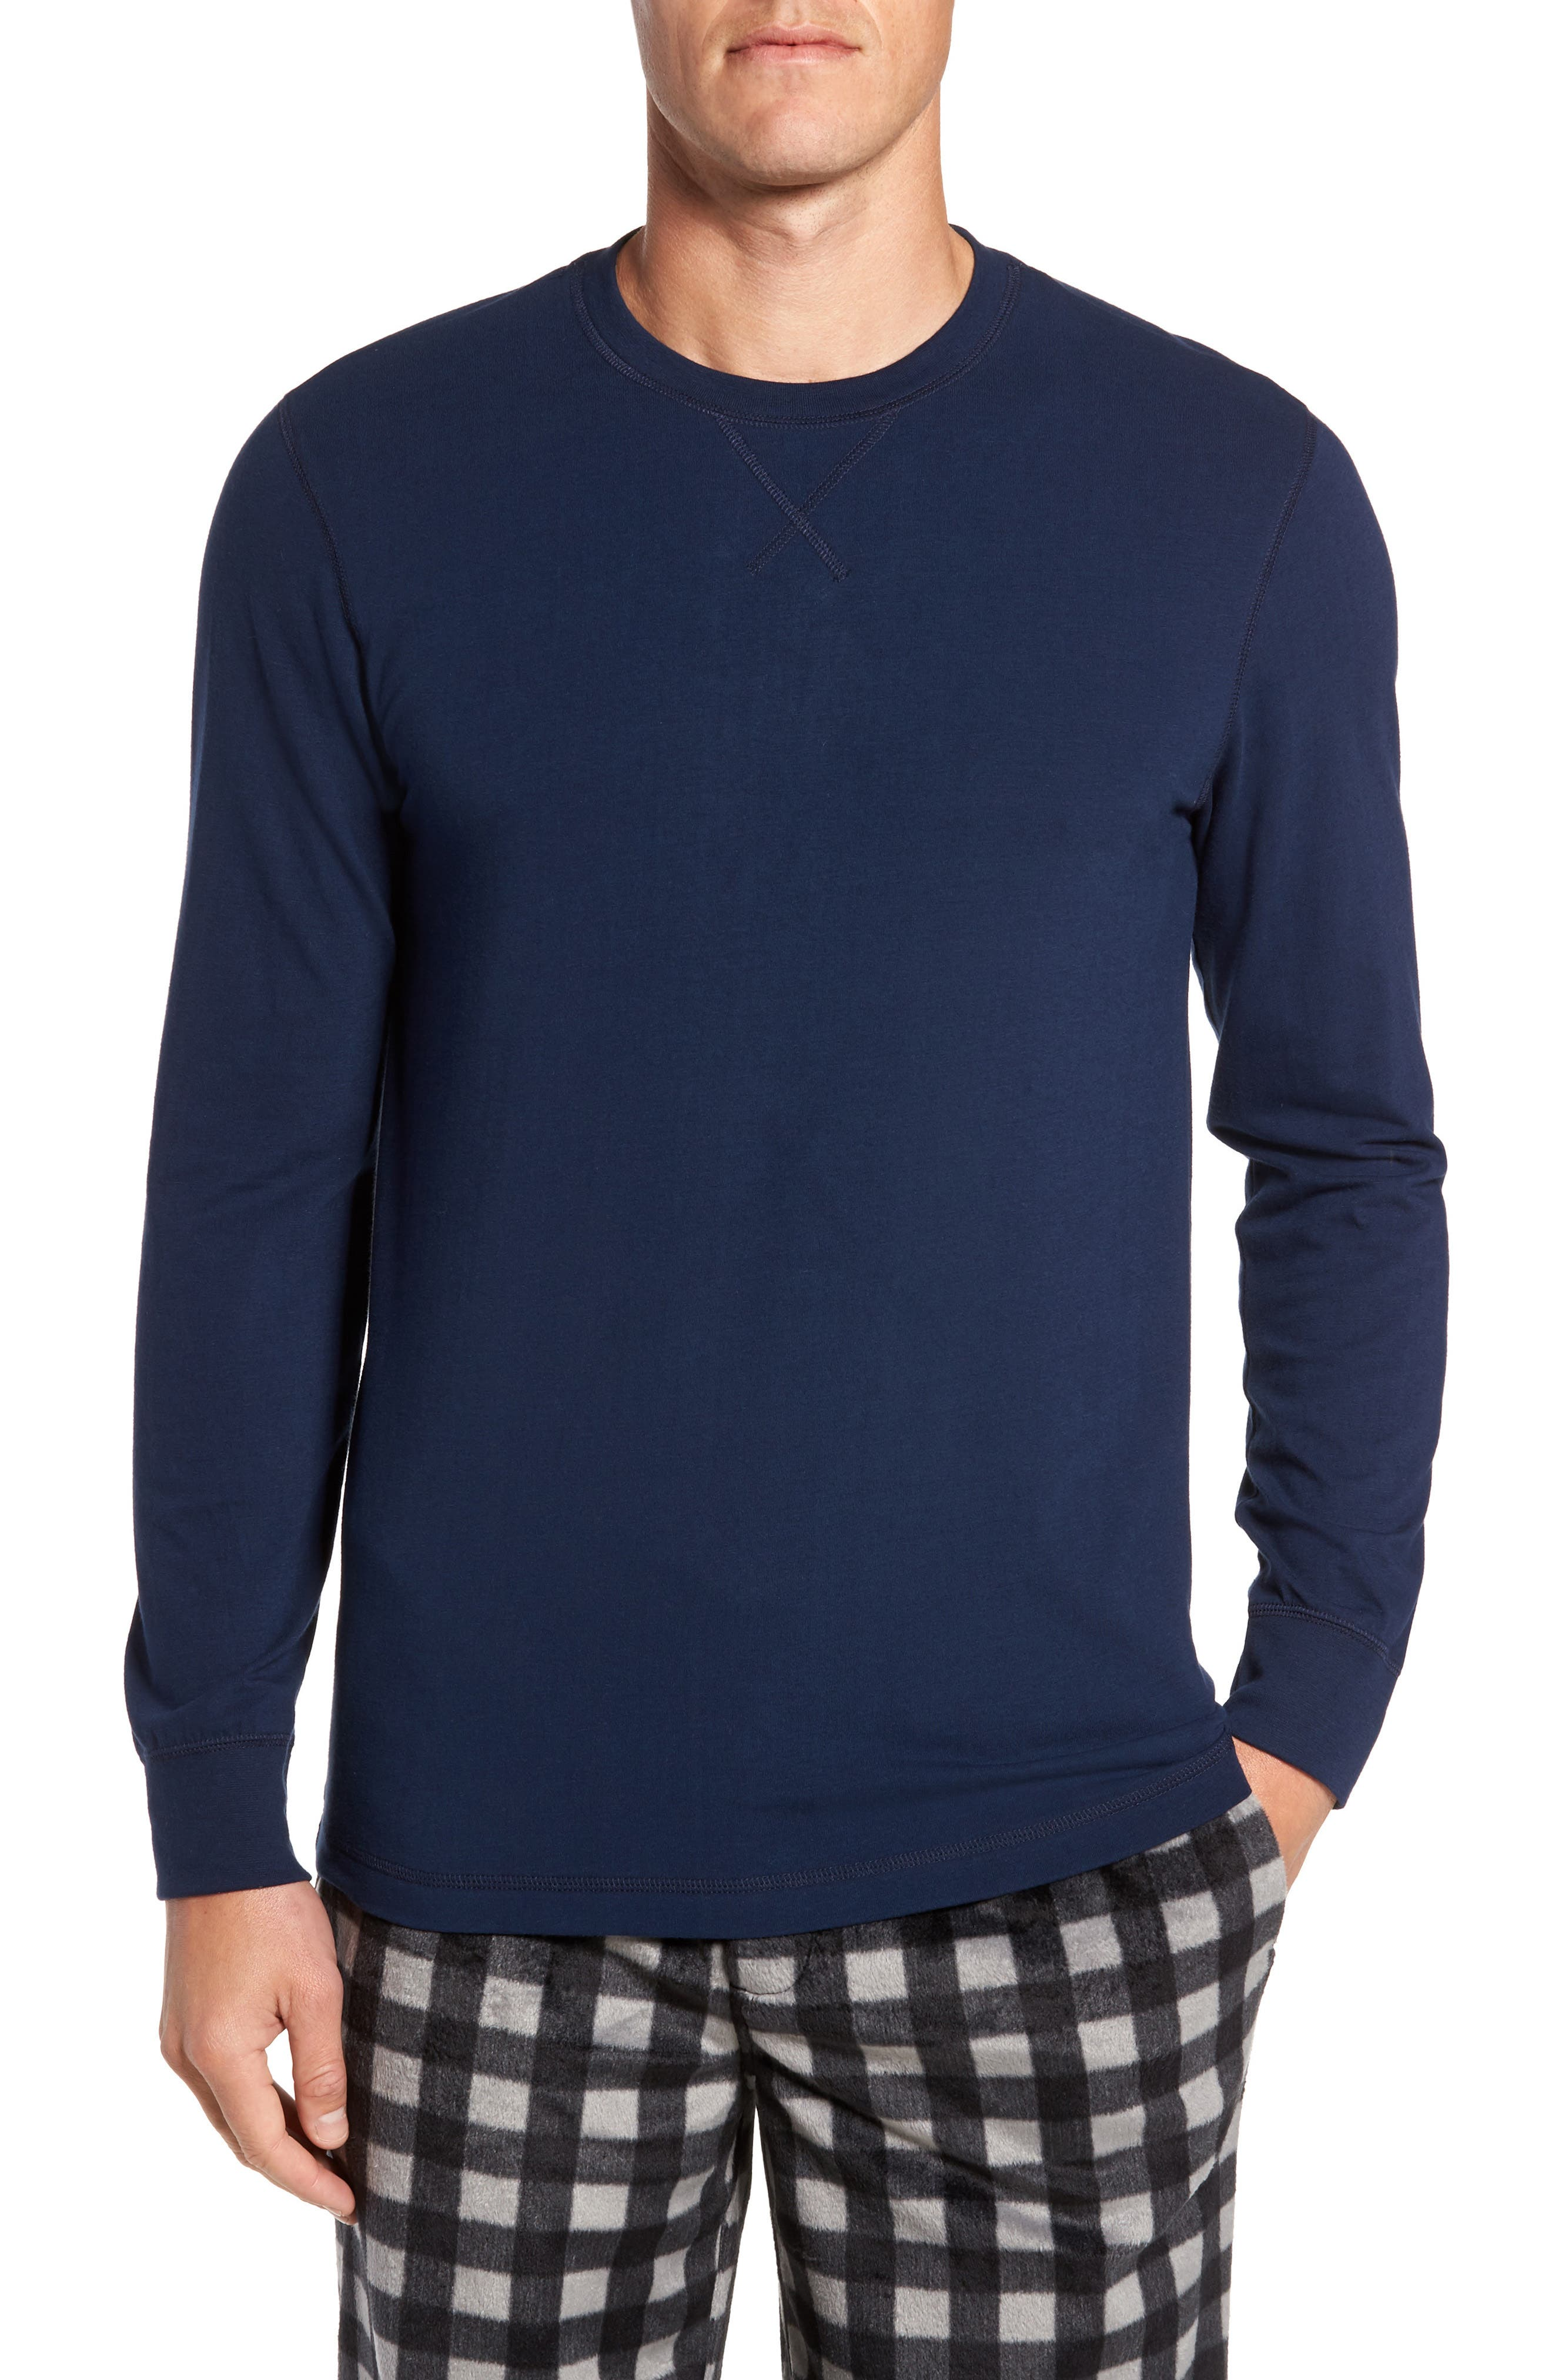 Alternate Image 1 Selected - Nordstrom Men's Shop Stretch Cotton Long Sleeve T-Shirt